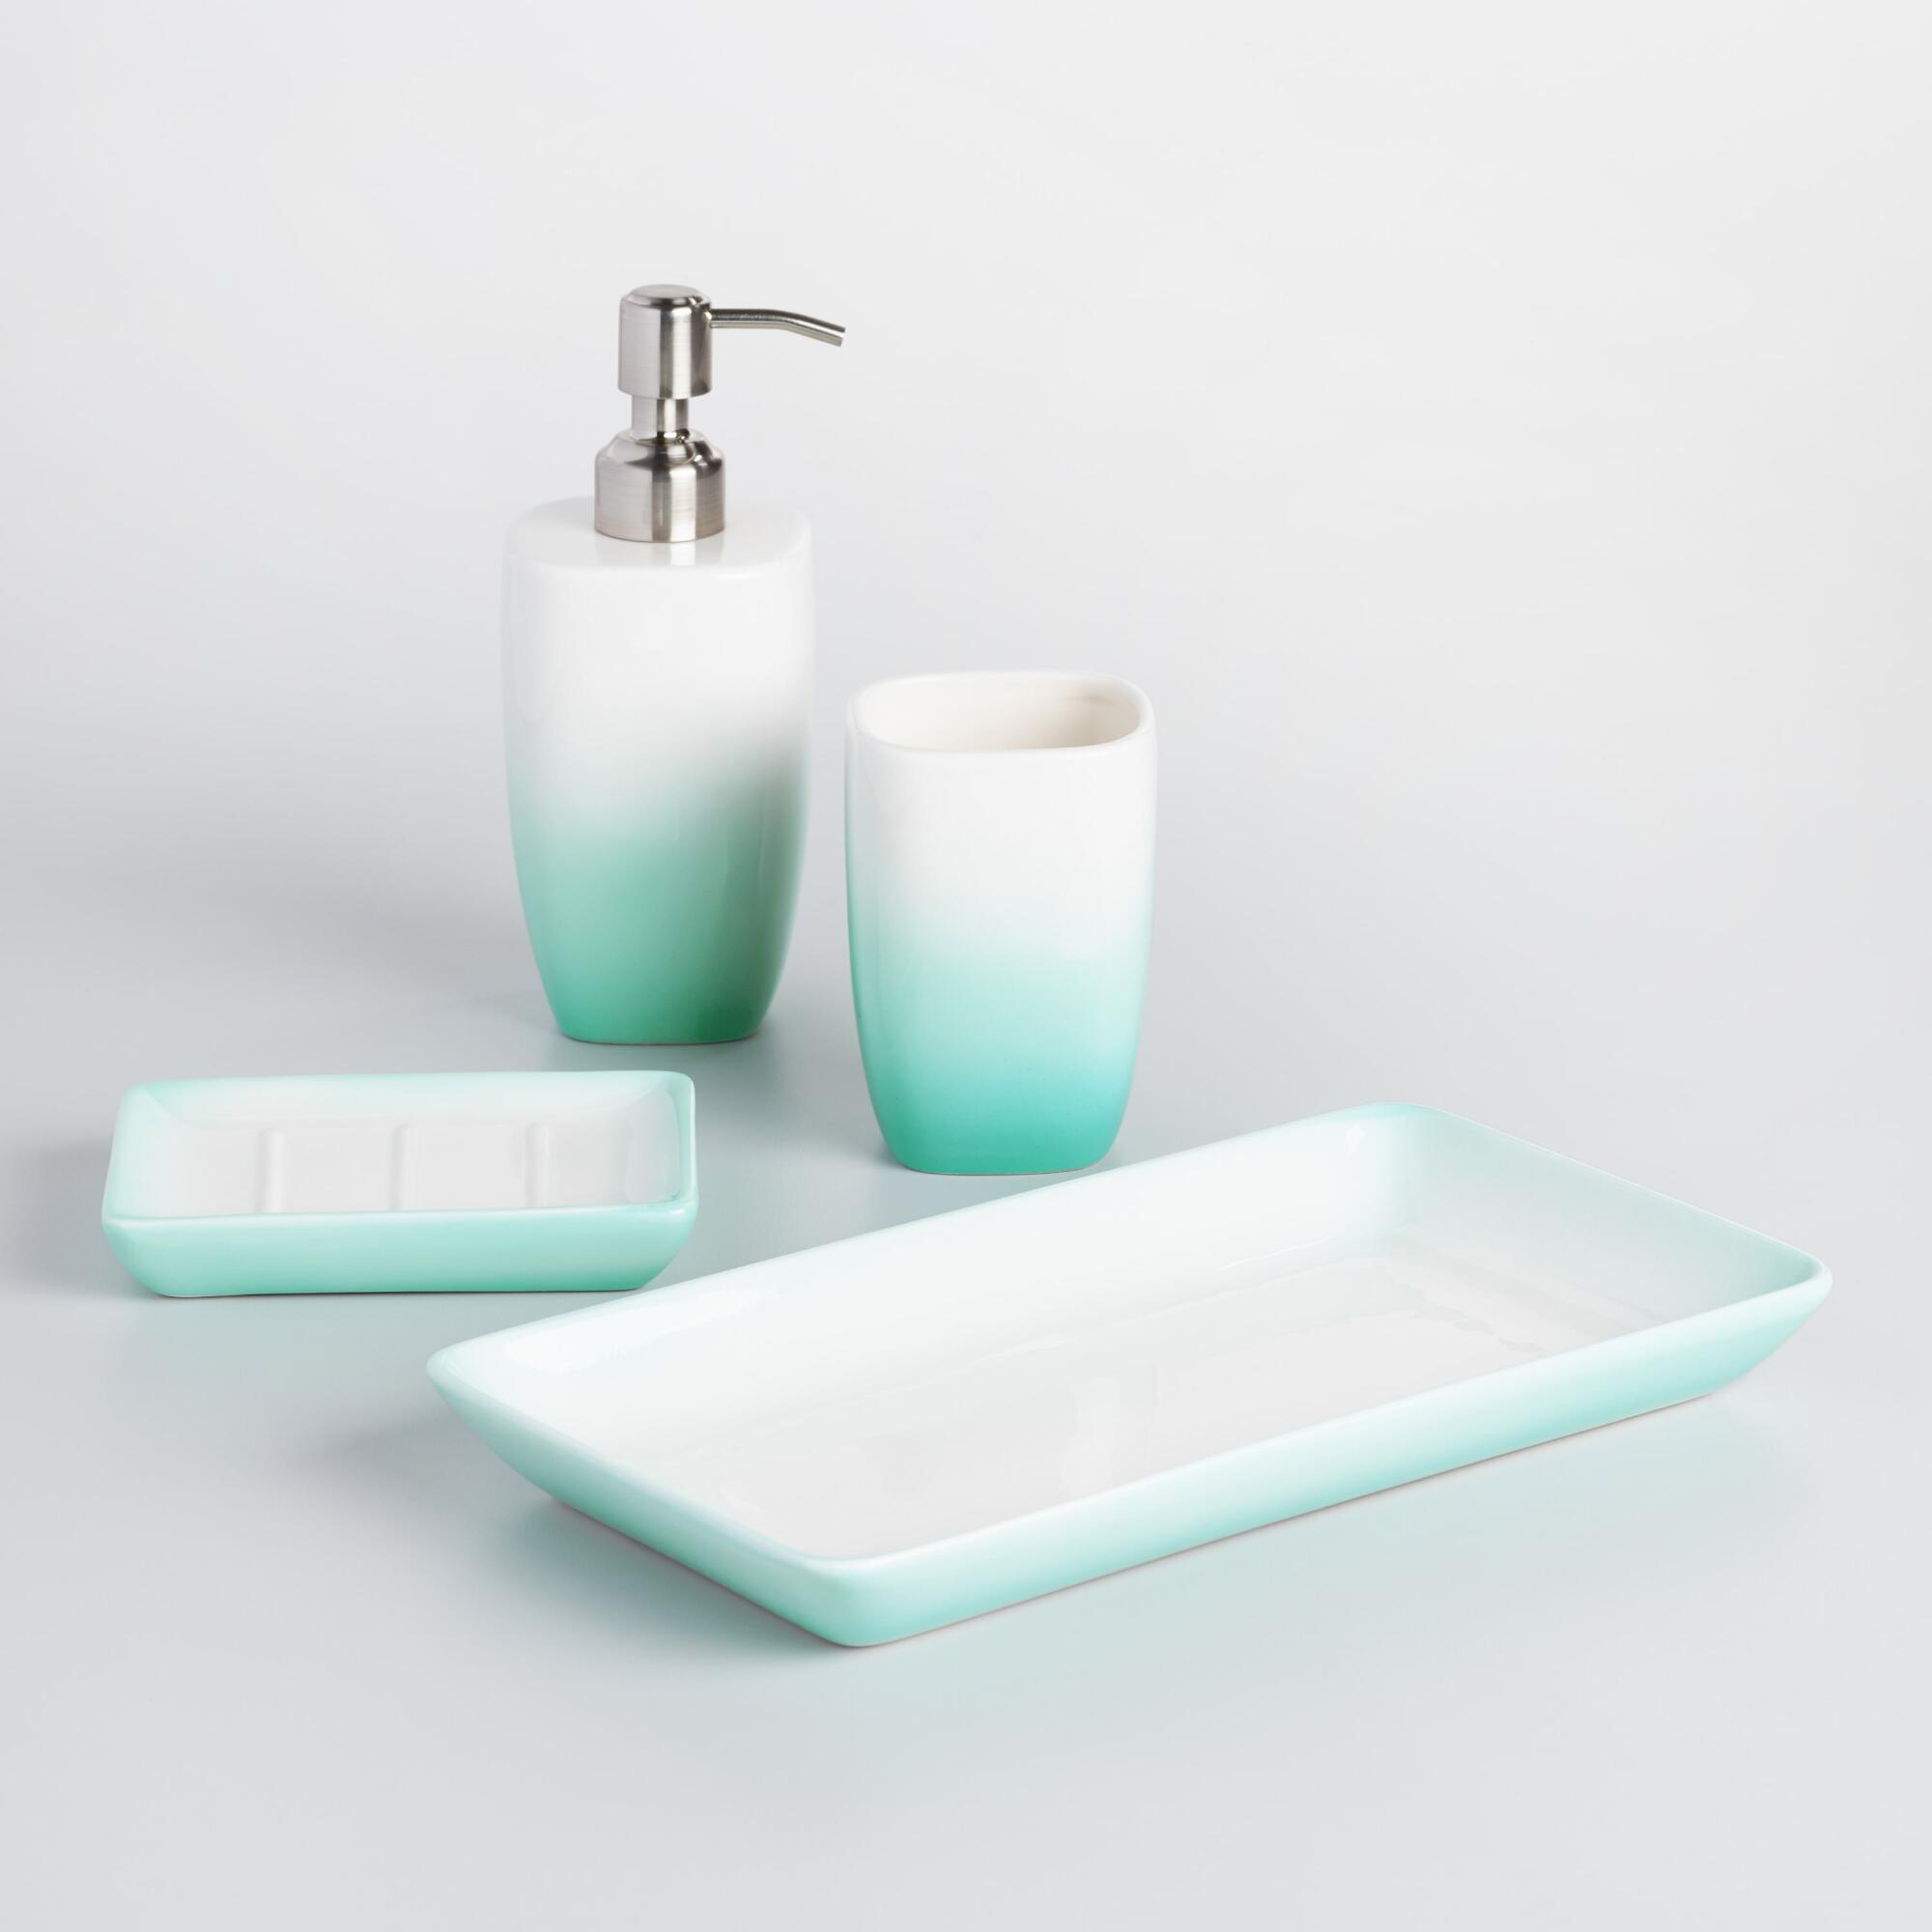 Aqua ombre ceramic bath accessories collection for Bath shower accessories